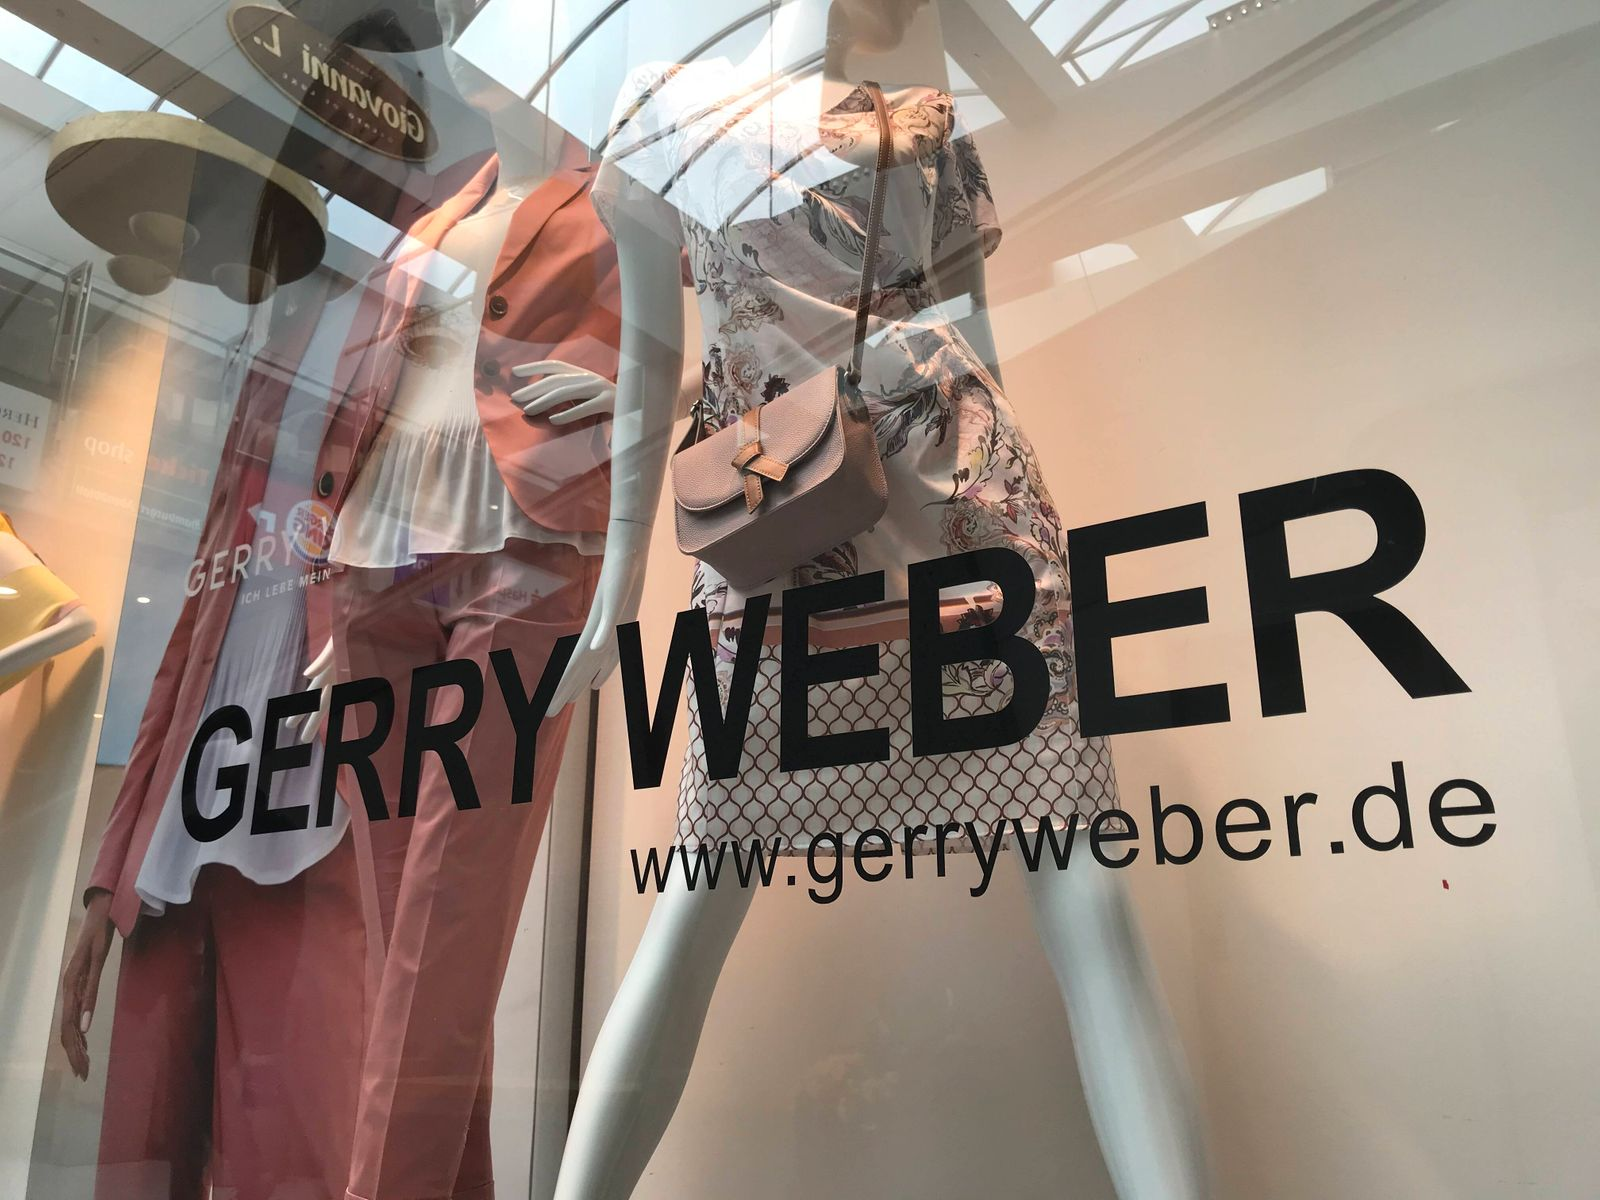 Das Logo vom Modehersteller Gerry Weber ¸ber einer Filiale 02.04.2020 *** The logo of fashion manufacturer Gerry Weber a